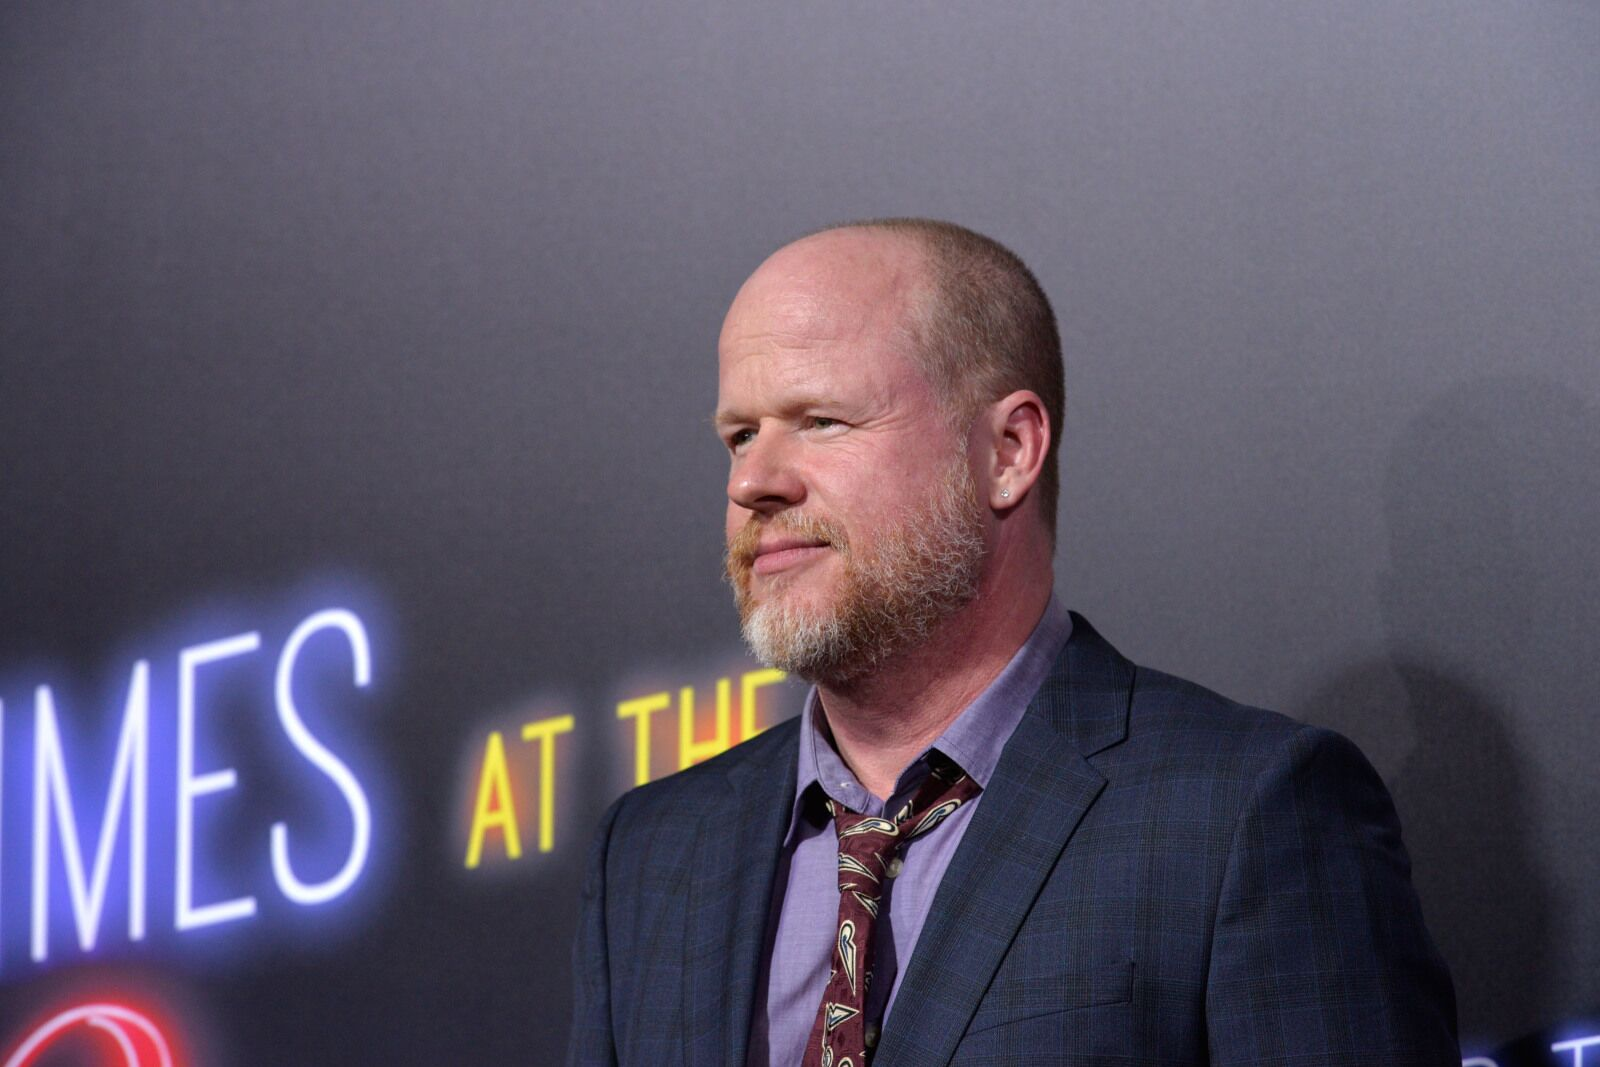 The Nevers: Six cast in Joss Whedon sci-fi series from HBO